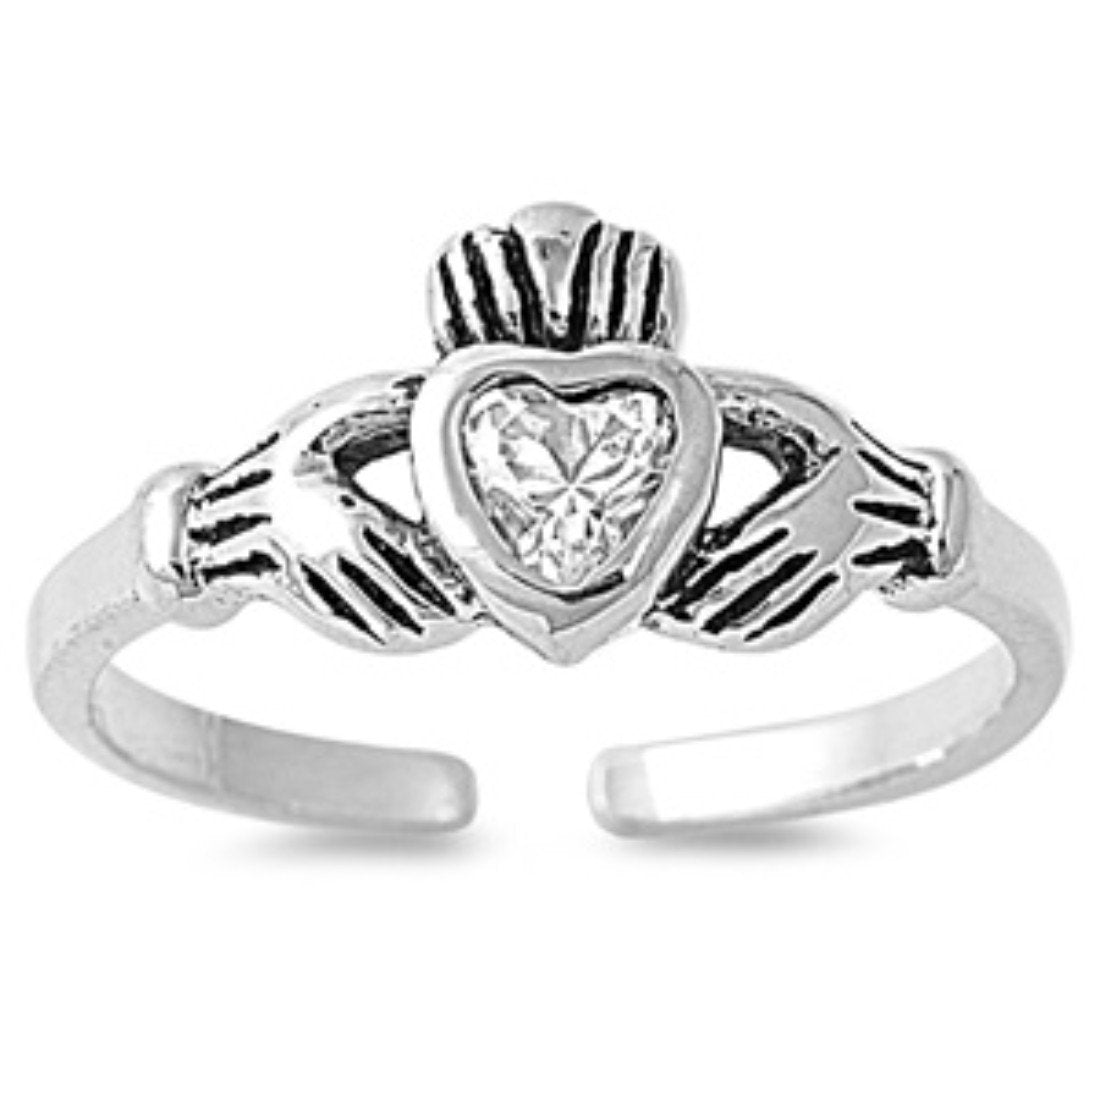 Claddagh Adjustable Silver Toe Ring Band Simulated Cubic Zirconia 925 Sterling Silver (7mm)